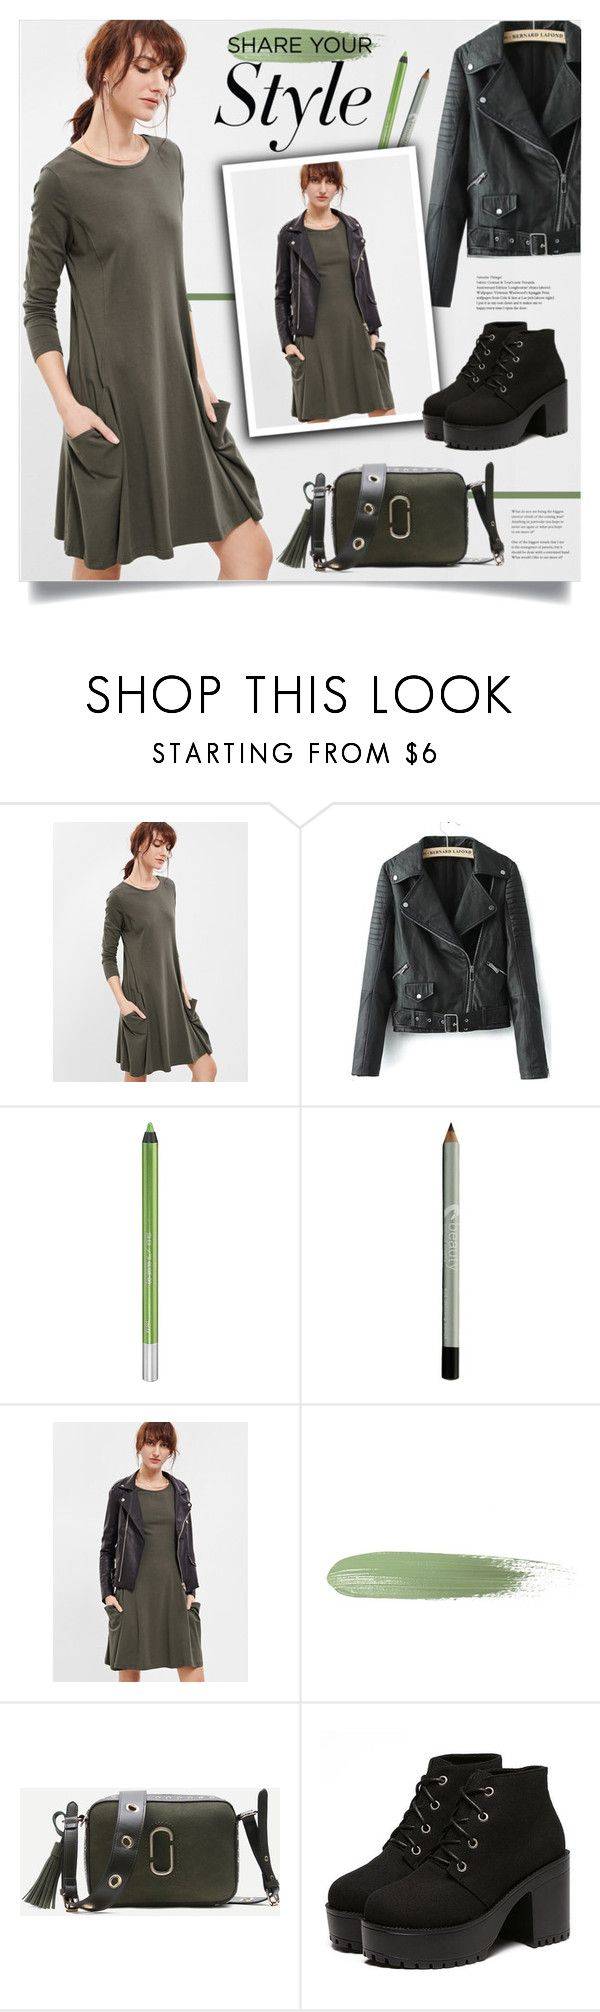 """Share Your Style"" by mahafromkailash ❤ liked on Polyvore featuring WithChic, Urban Decay, men's fashion, menswear, dress, jacket, PlatformBoots, moto and shein"